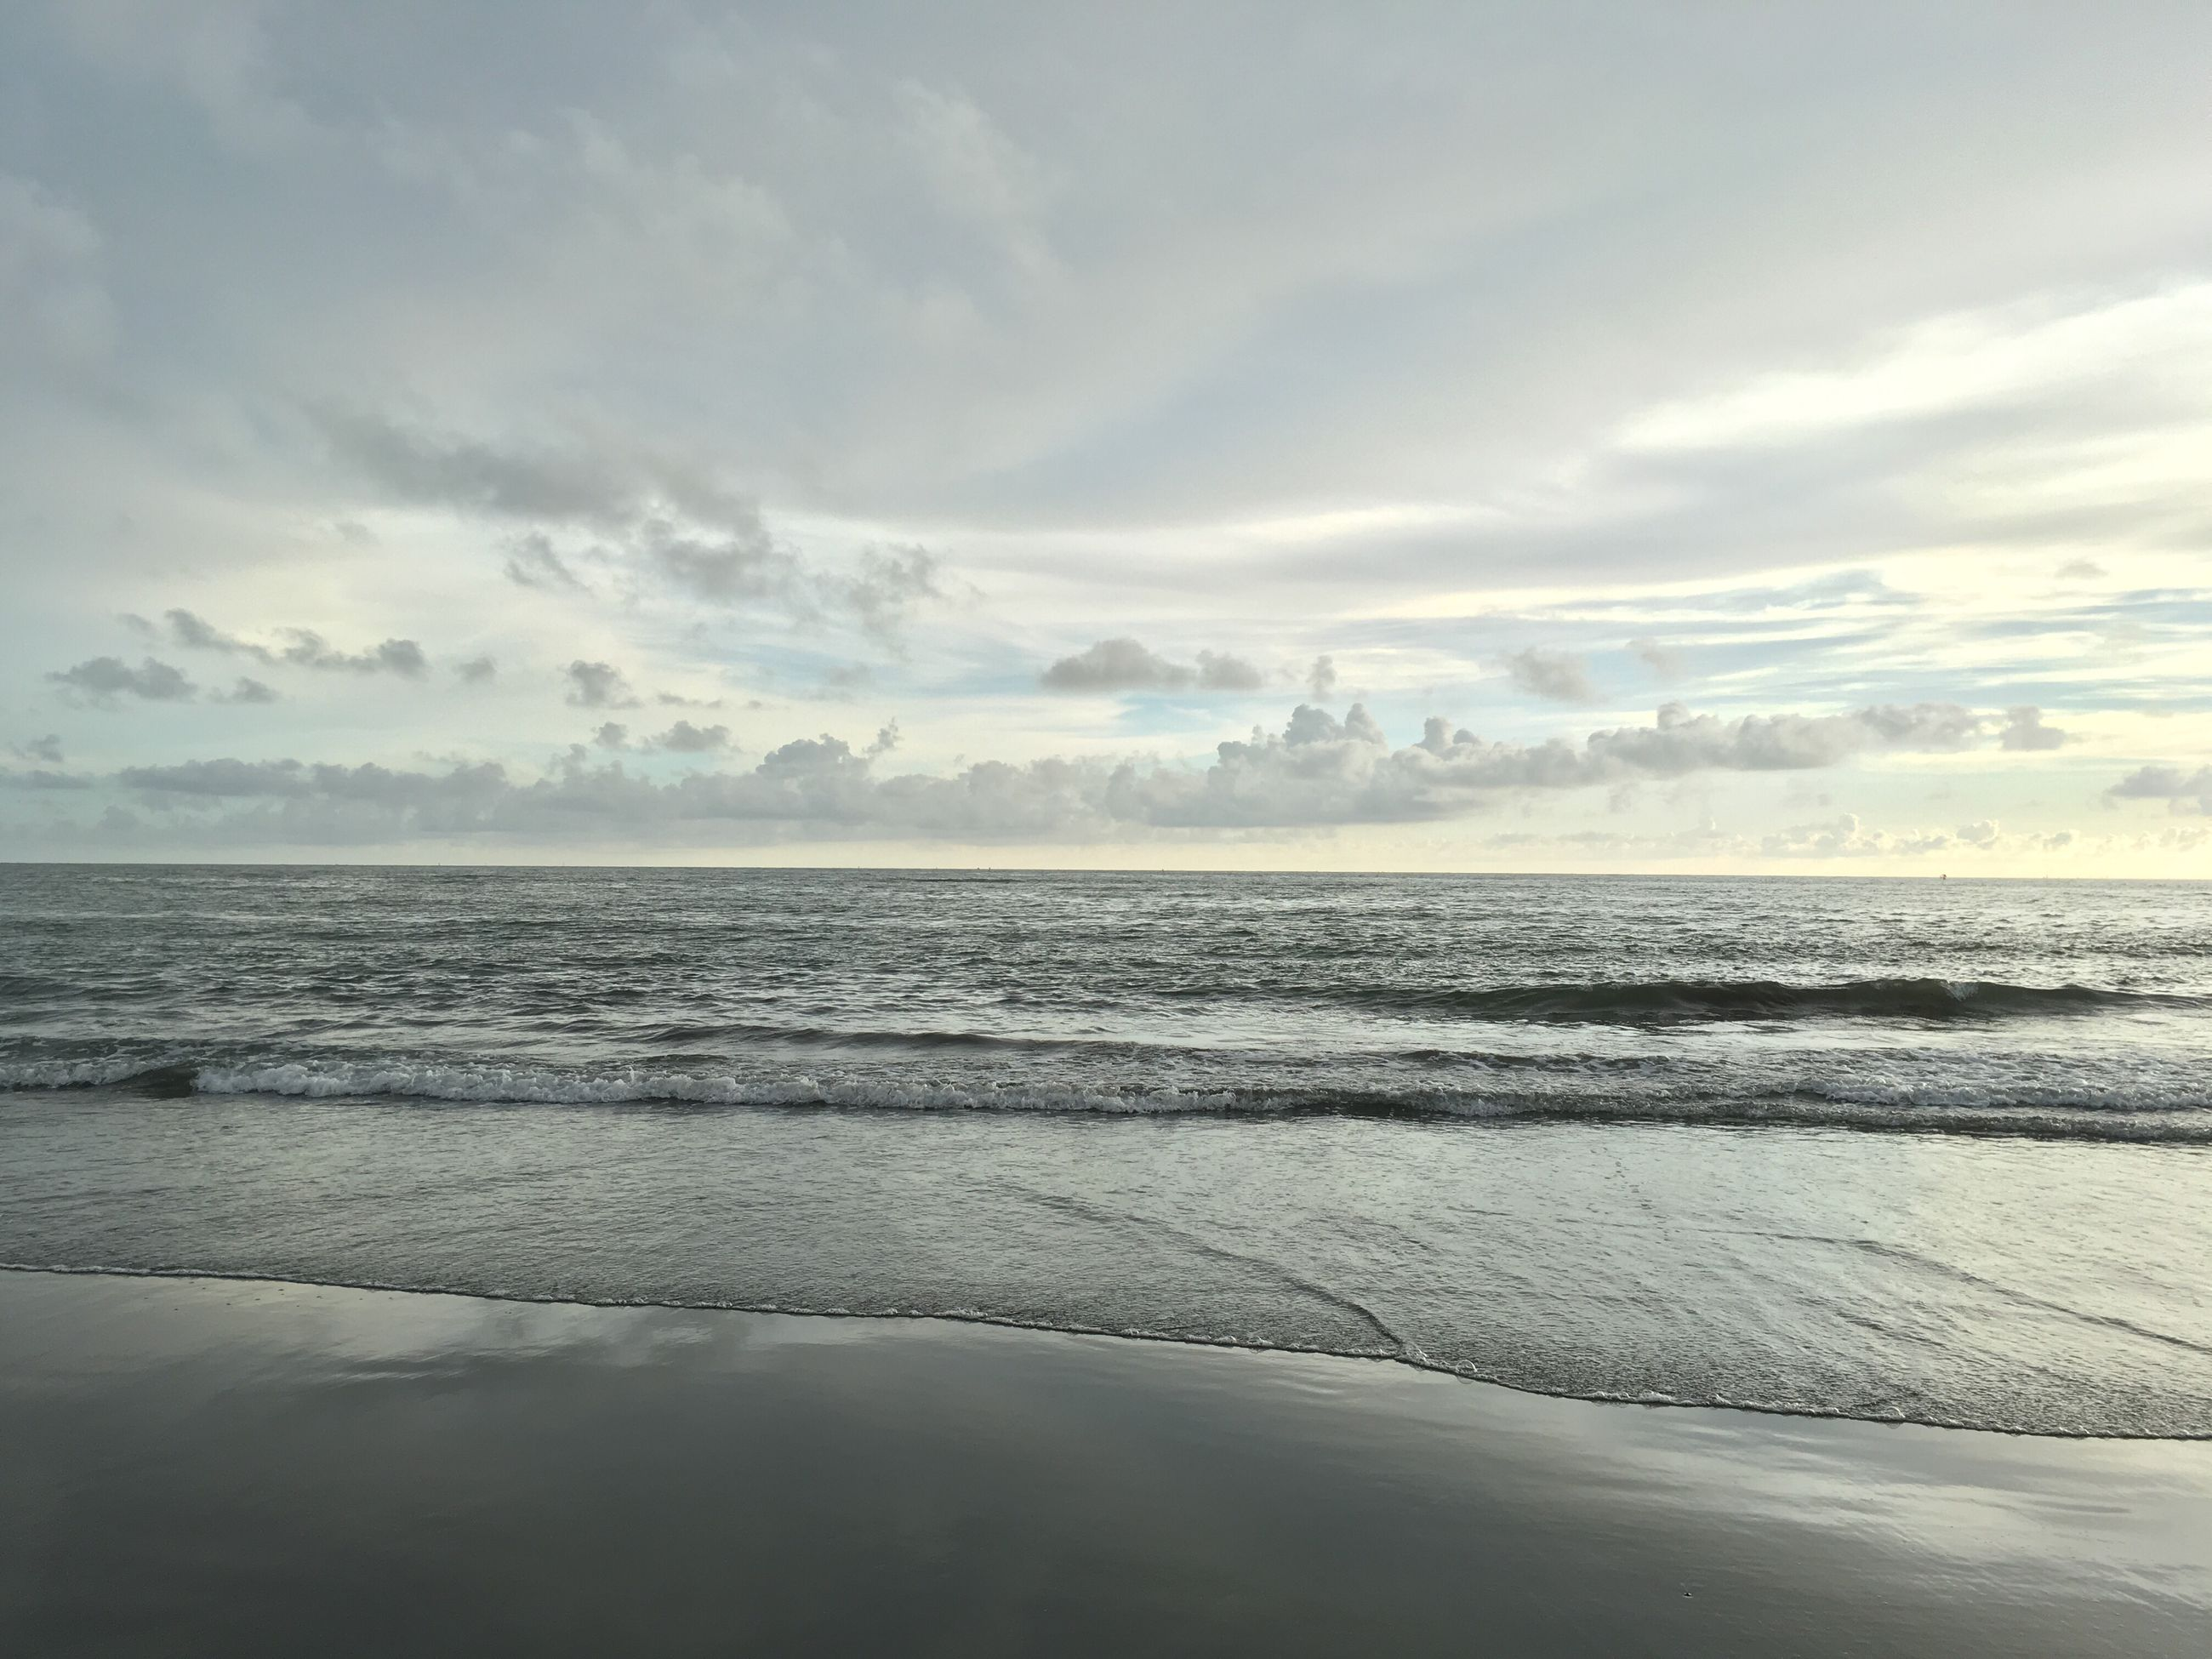 sea, water, beach, tranquil scene, horizon over water, tranquility, sky, scenics, beauty in nature, shore, sand, nature, cloud - sky, idyllic, wave, cloud, calm, outdoors, remote, reflection